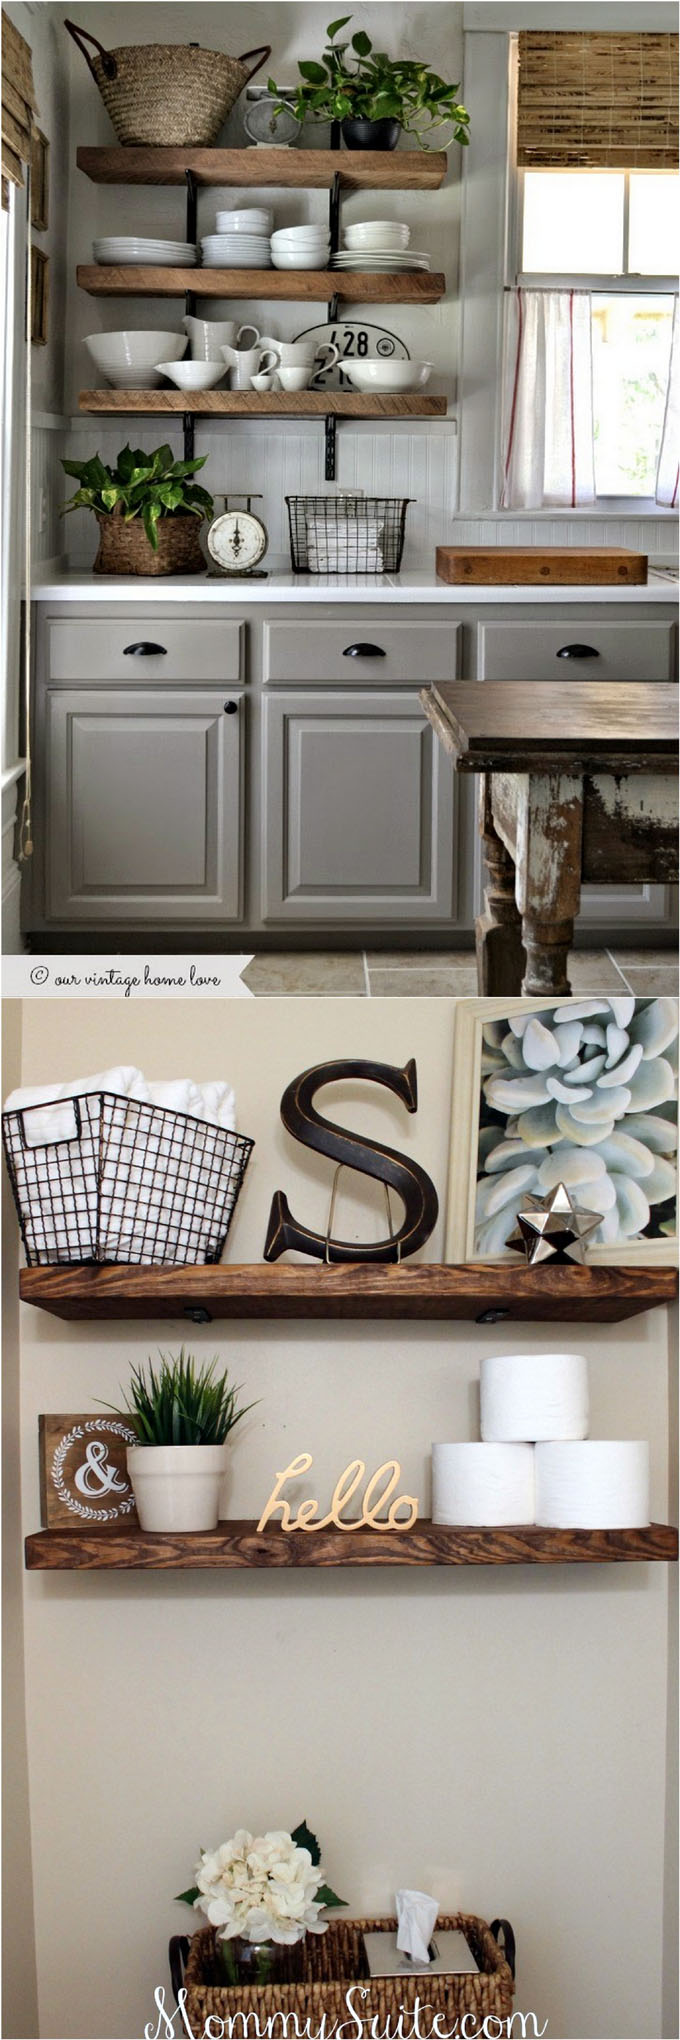 19 Diy Floating Shelves Ideas